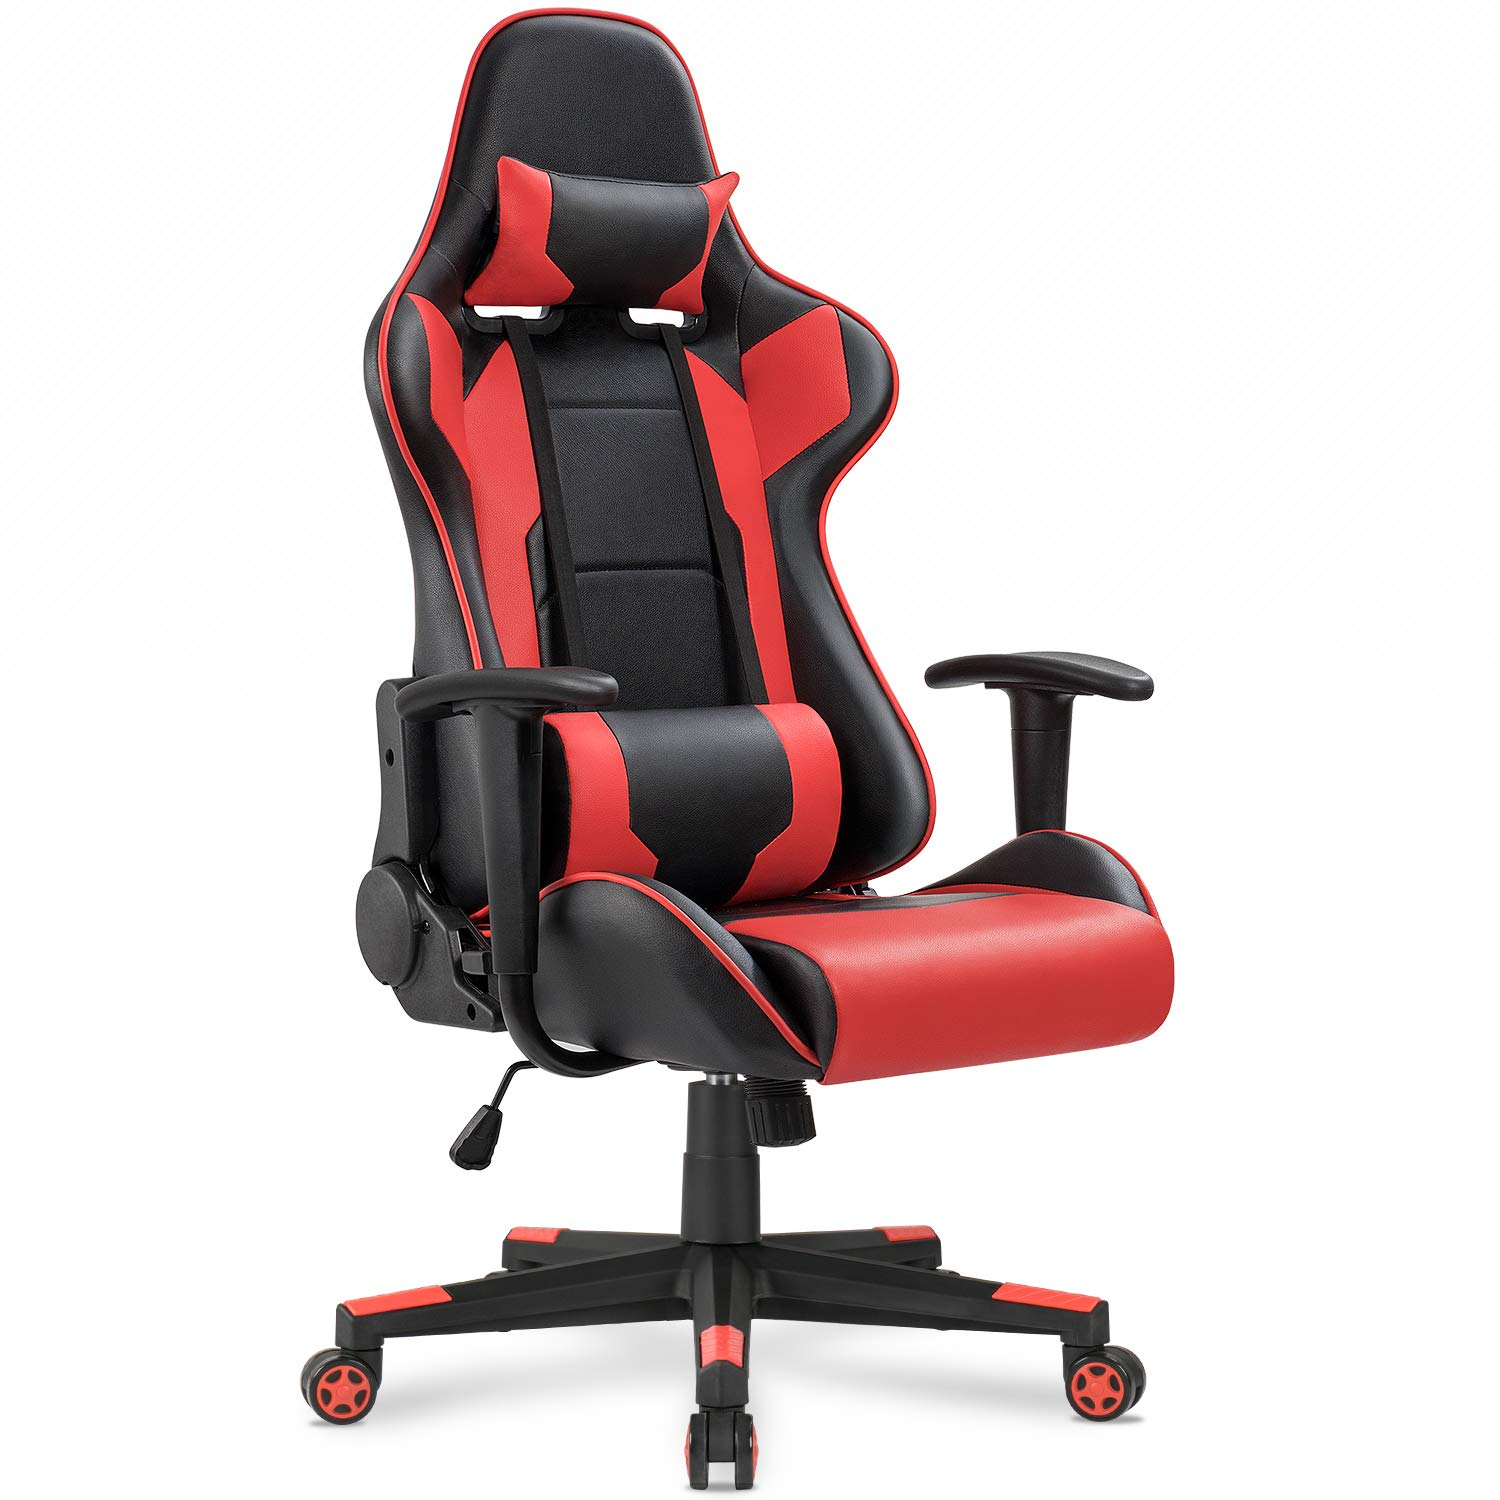 2. Best Executive Office Chair Review U2013 Homall Gaming Chair Racing Style  High Back Faux Leather Office Chair Computer Desk Chair Executive And  Ergonomic ...